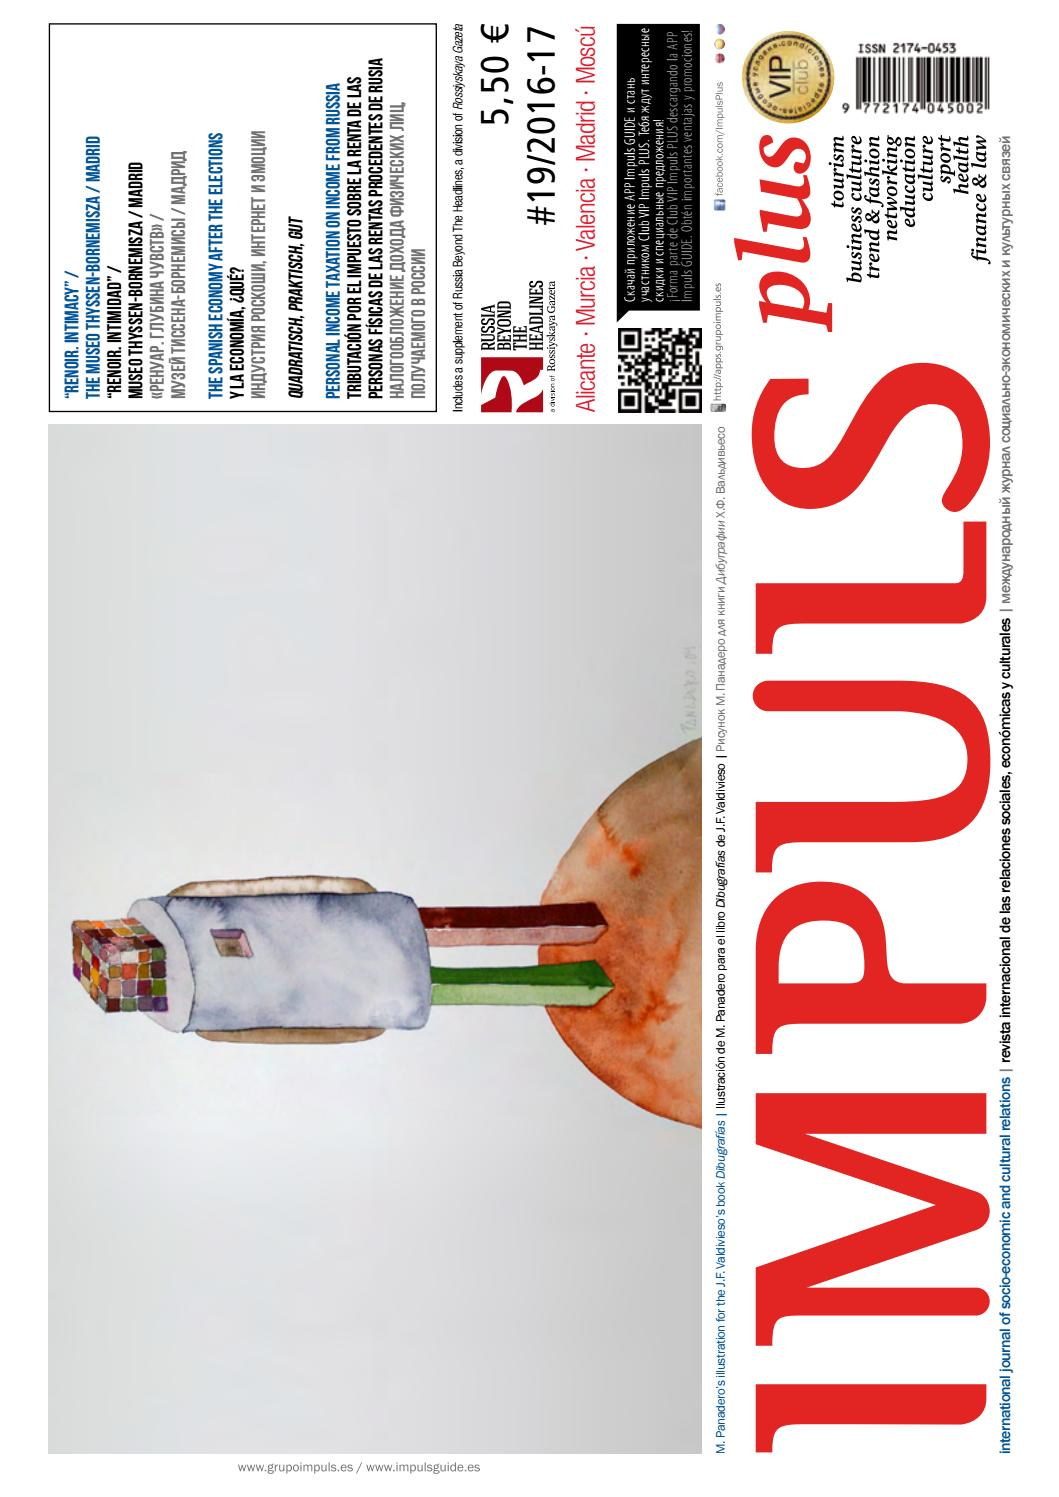 df5cabbbf45 Revista Impuls PLUS n.19 - ver. online by Grupo IMPULS - issuu